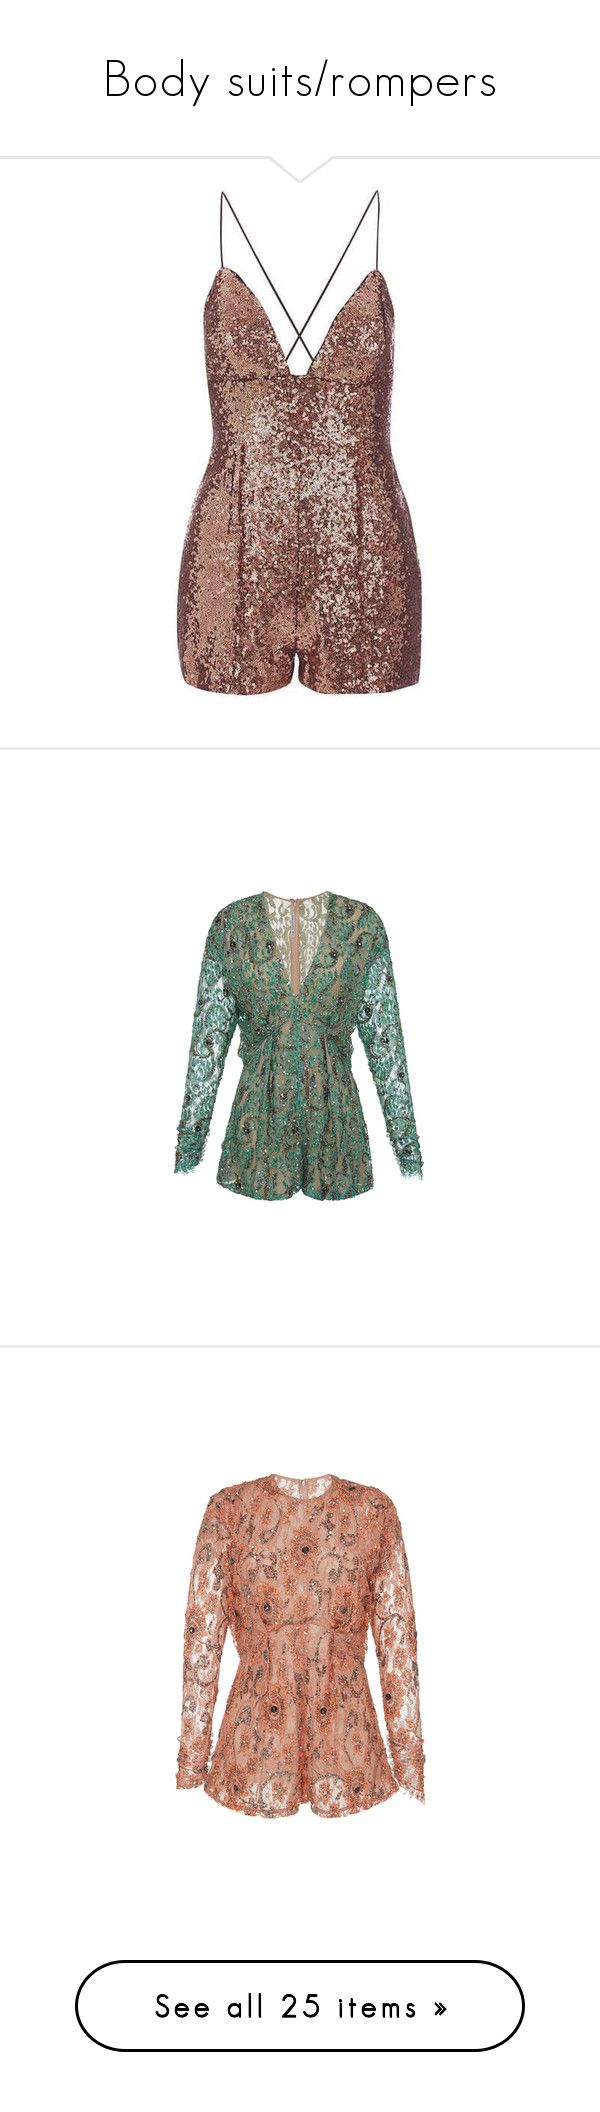 """""""Body suits/rompers"""" by sydneymarissa ❤ liked on Polyvore featuring jumpsuits, rompers, dresses, playsuit, rare london, brown romper, sequin romper, sequin rompers, playsuit romper and vestido"""